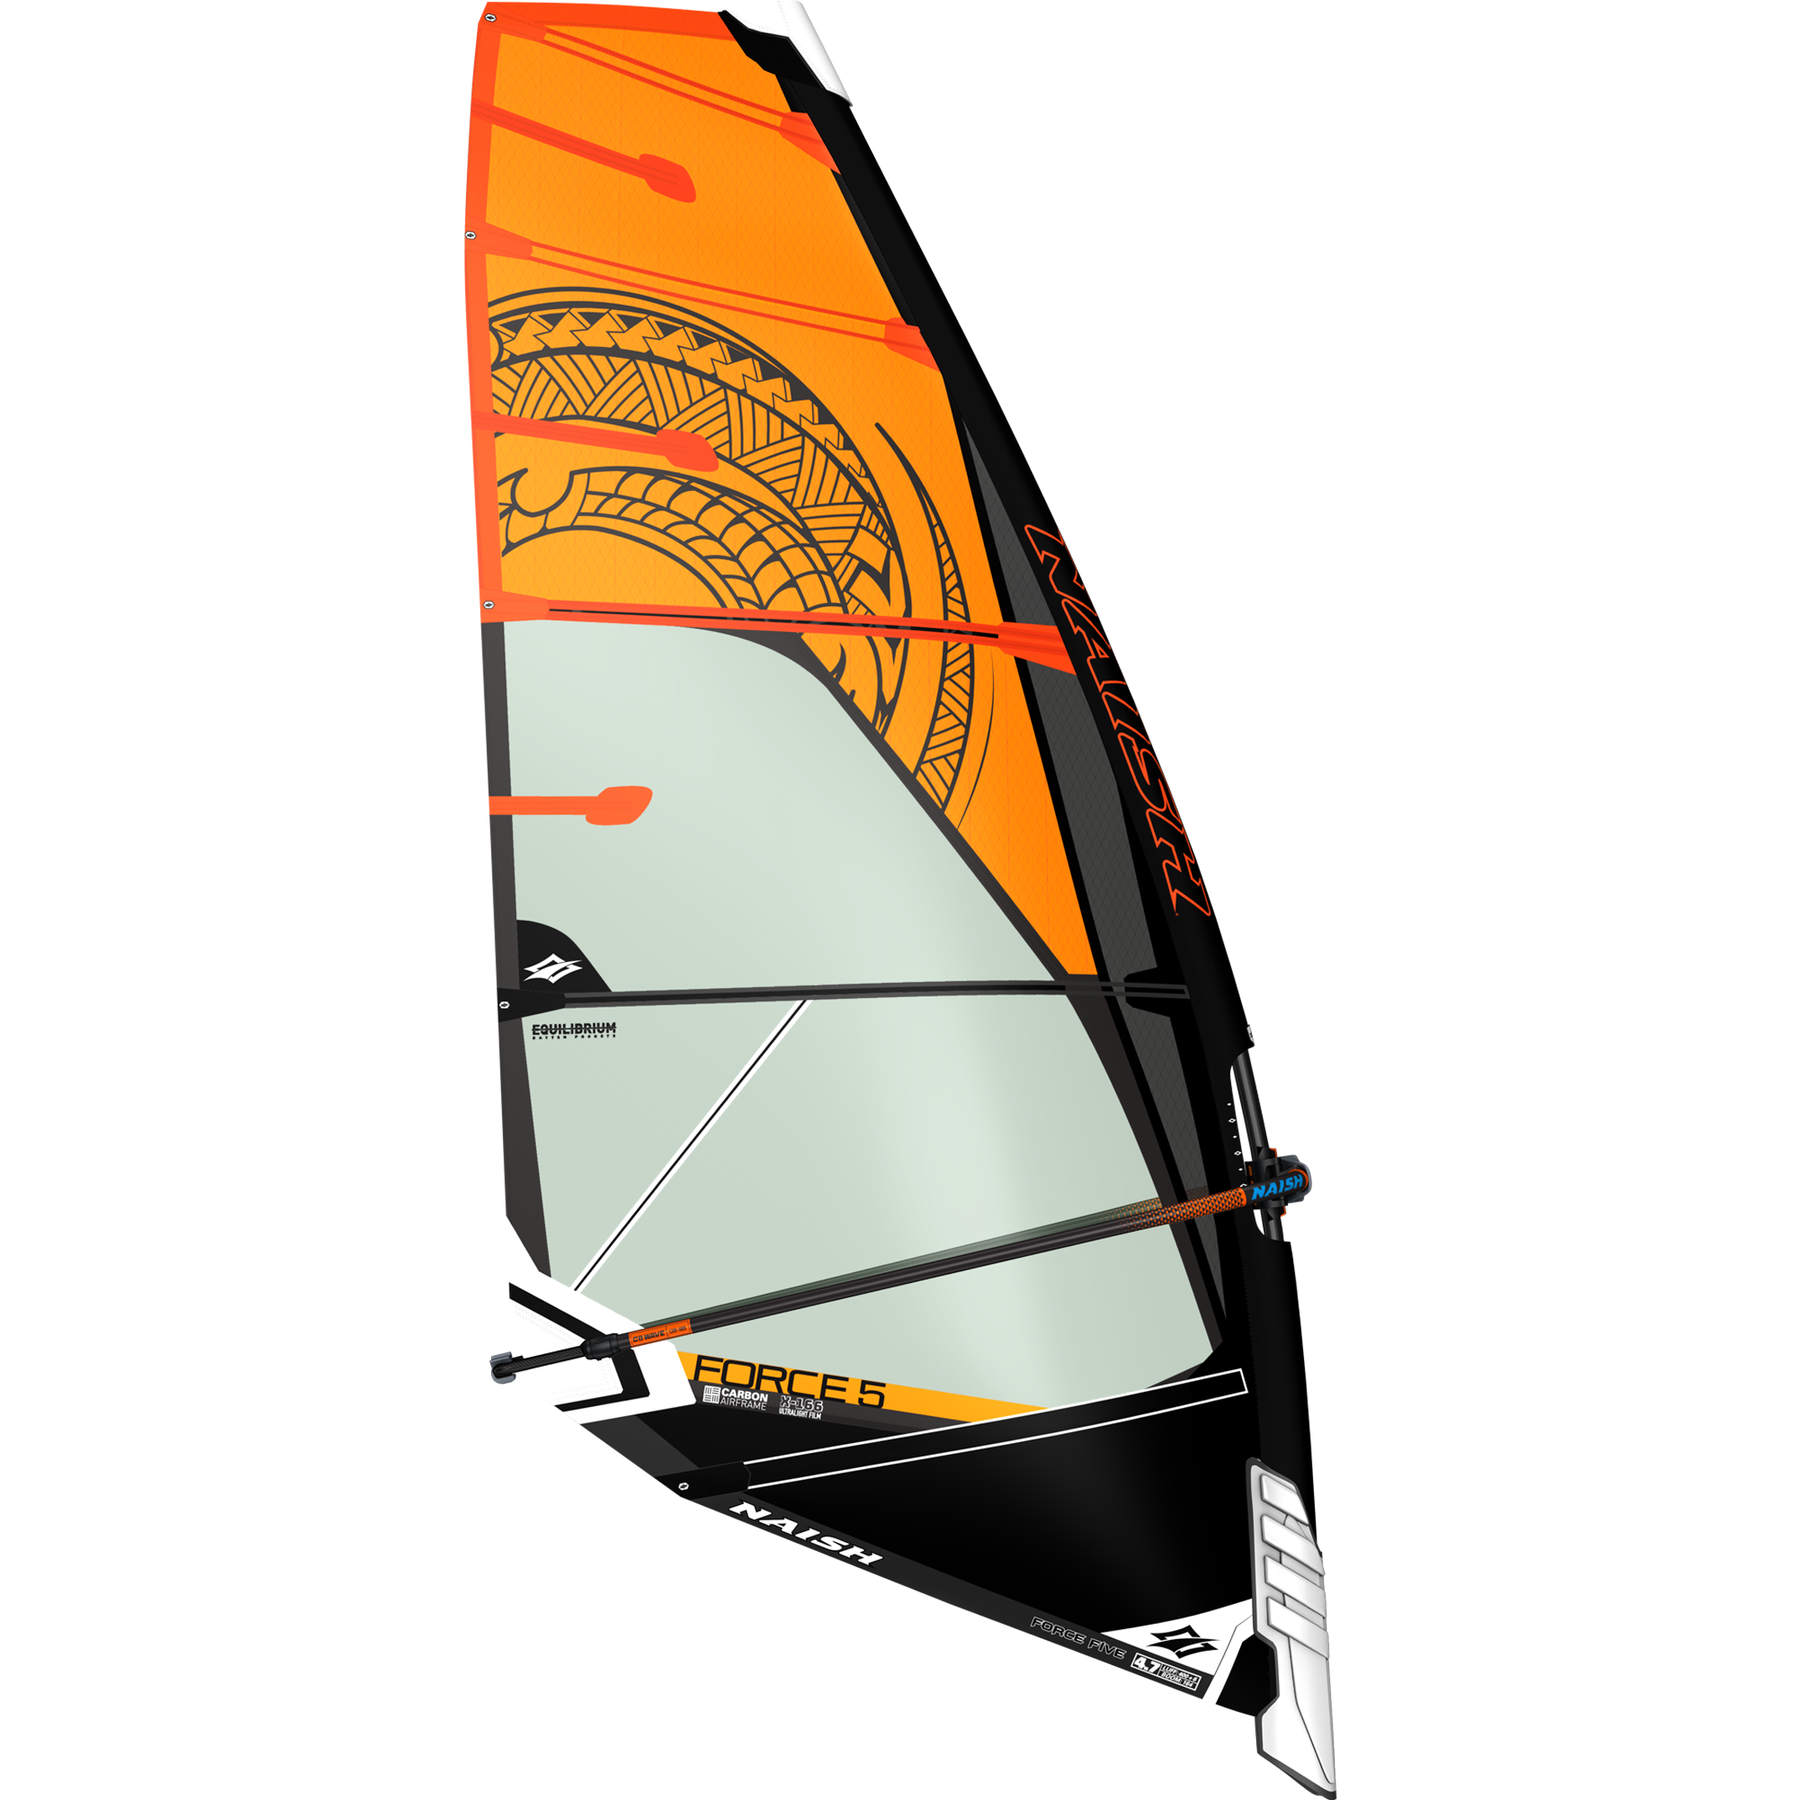 2021 S25 Naish Force V Windsurfing Sail